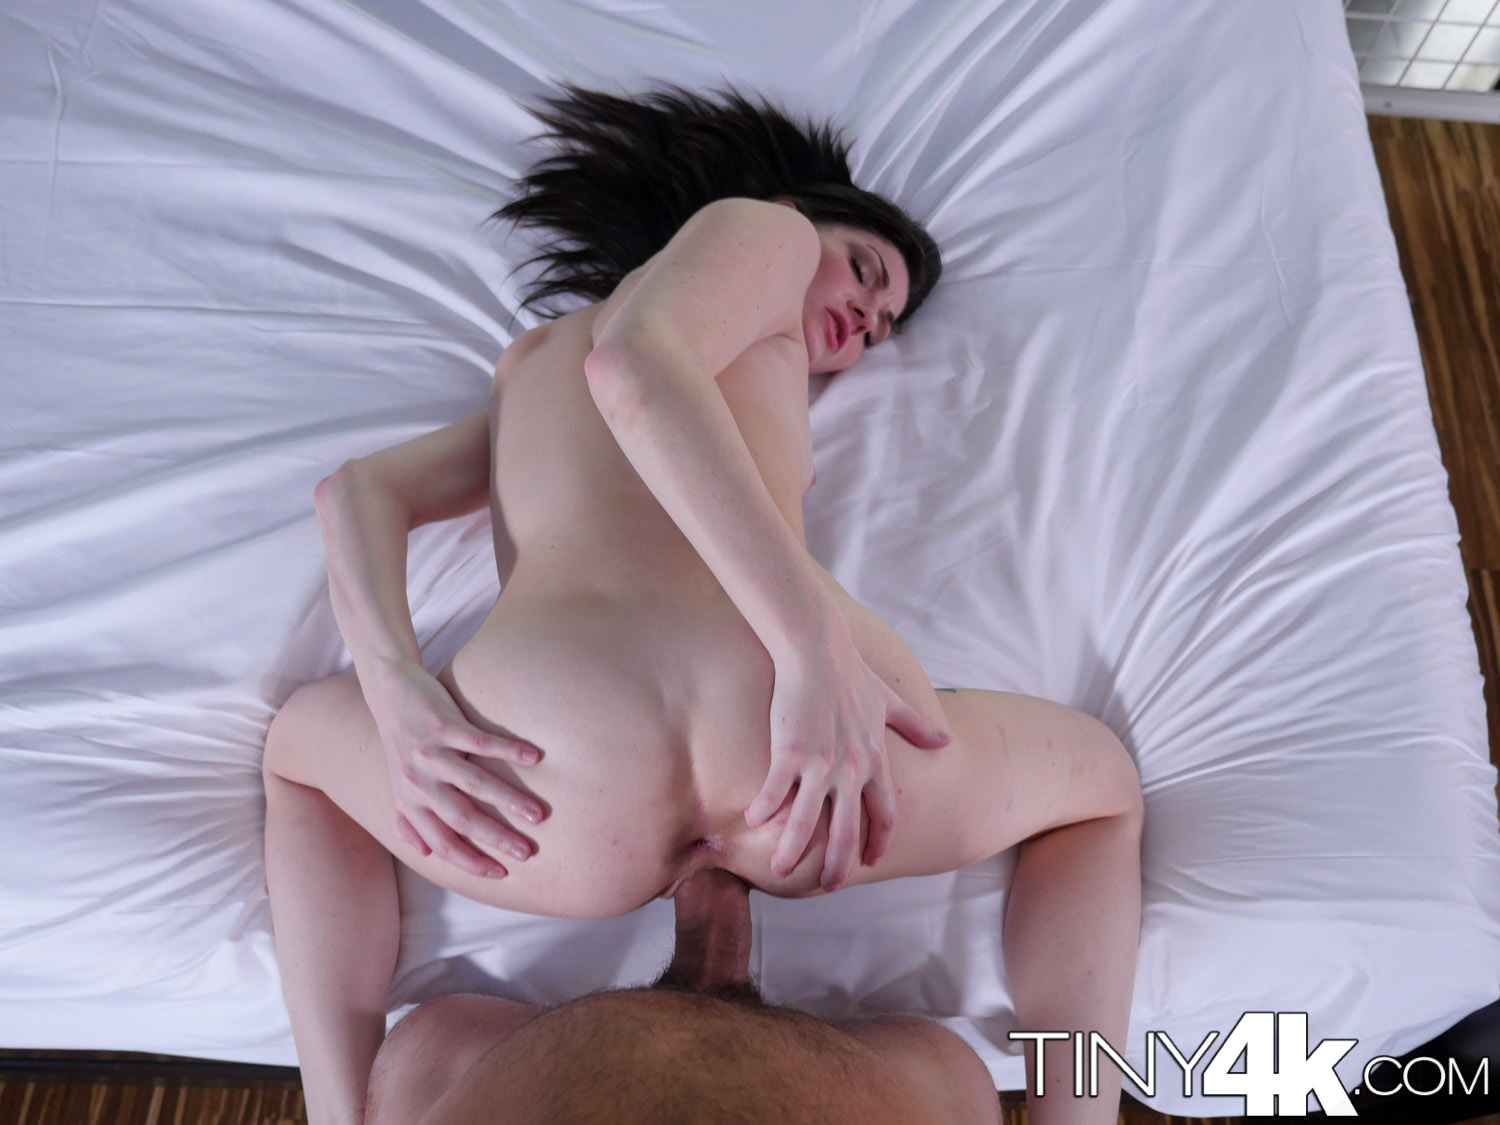 4k tiny4k tiny alice march stretches her pussy to take hug - 3 8